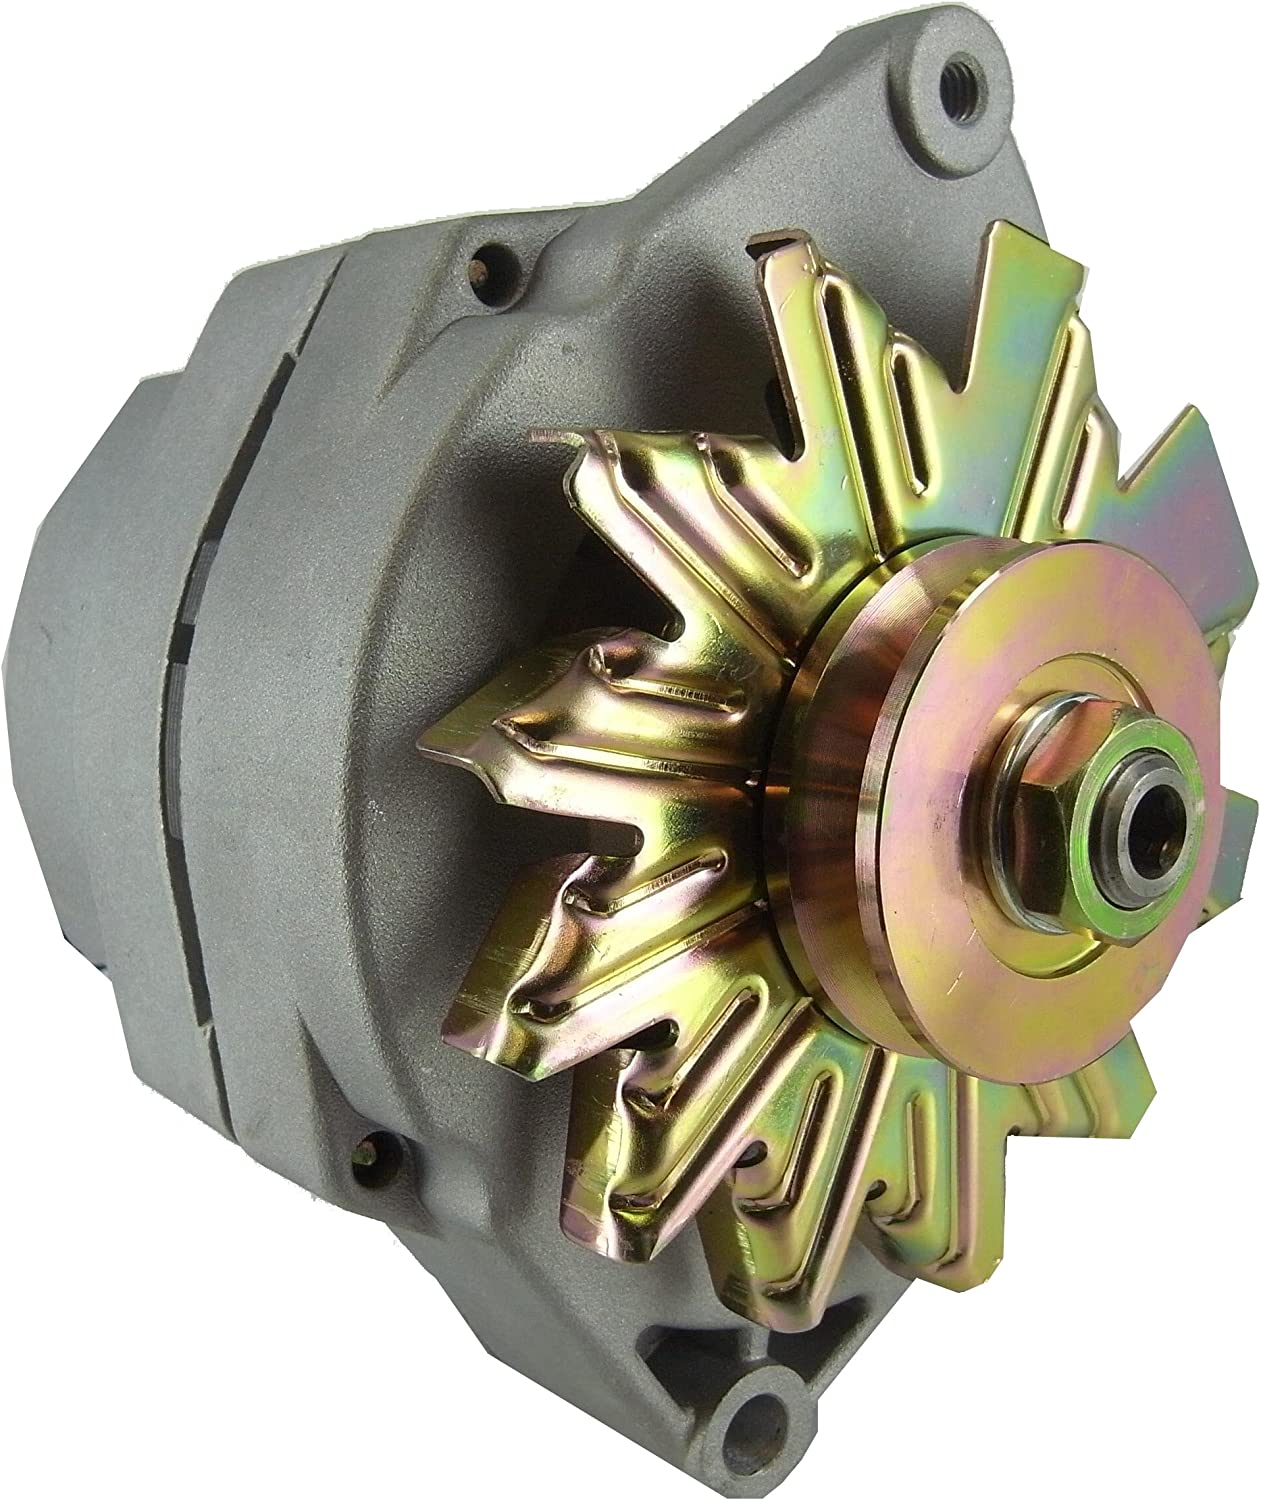 .NEW ALTERNATOR Fits 10SI DELCO 1 WIRE HOOKUP 50 AMP 24 VOLT